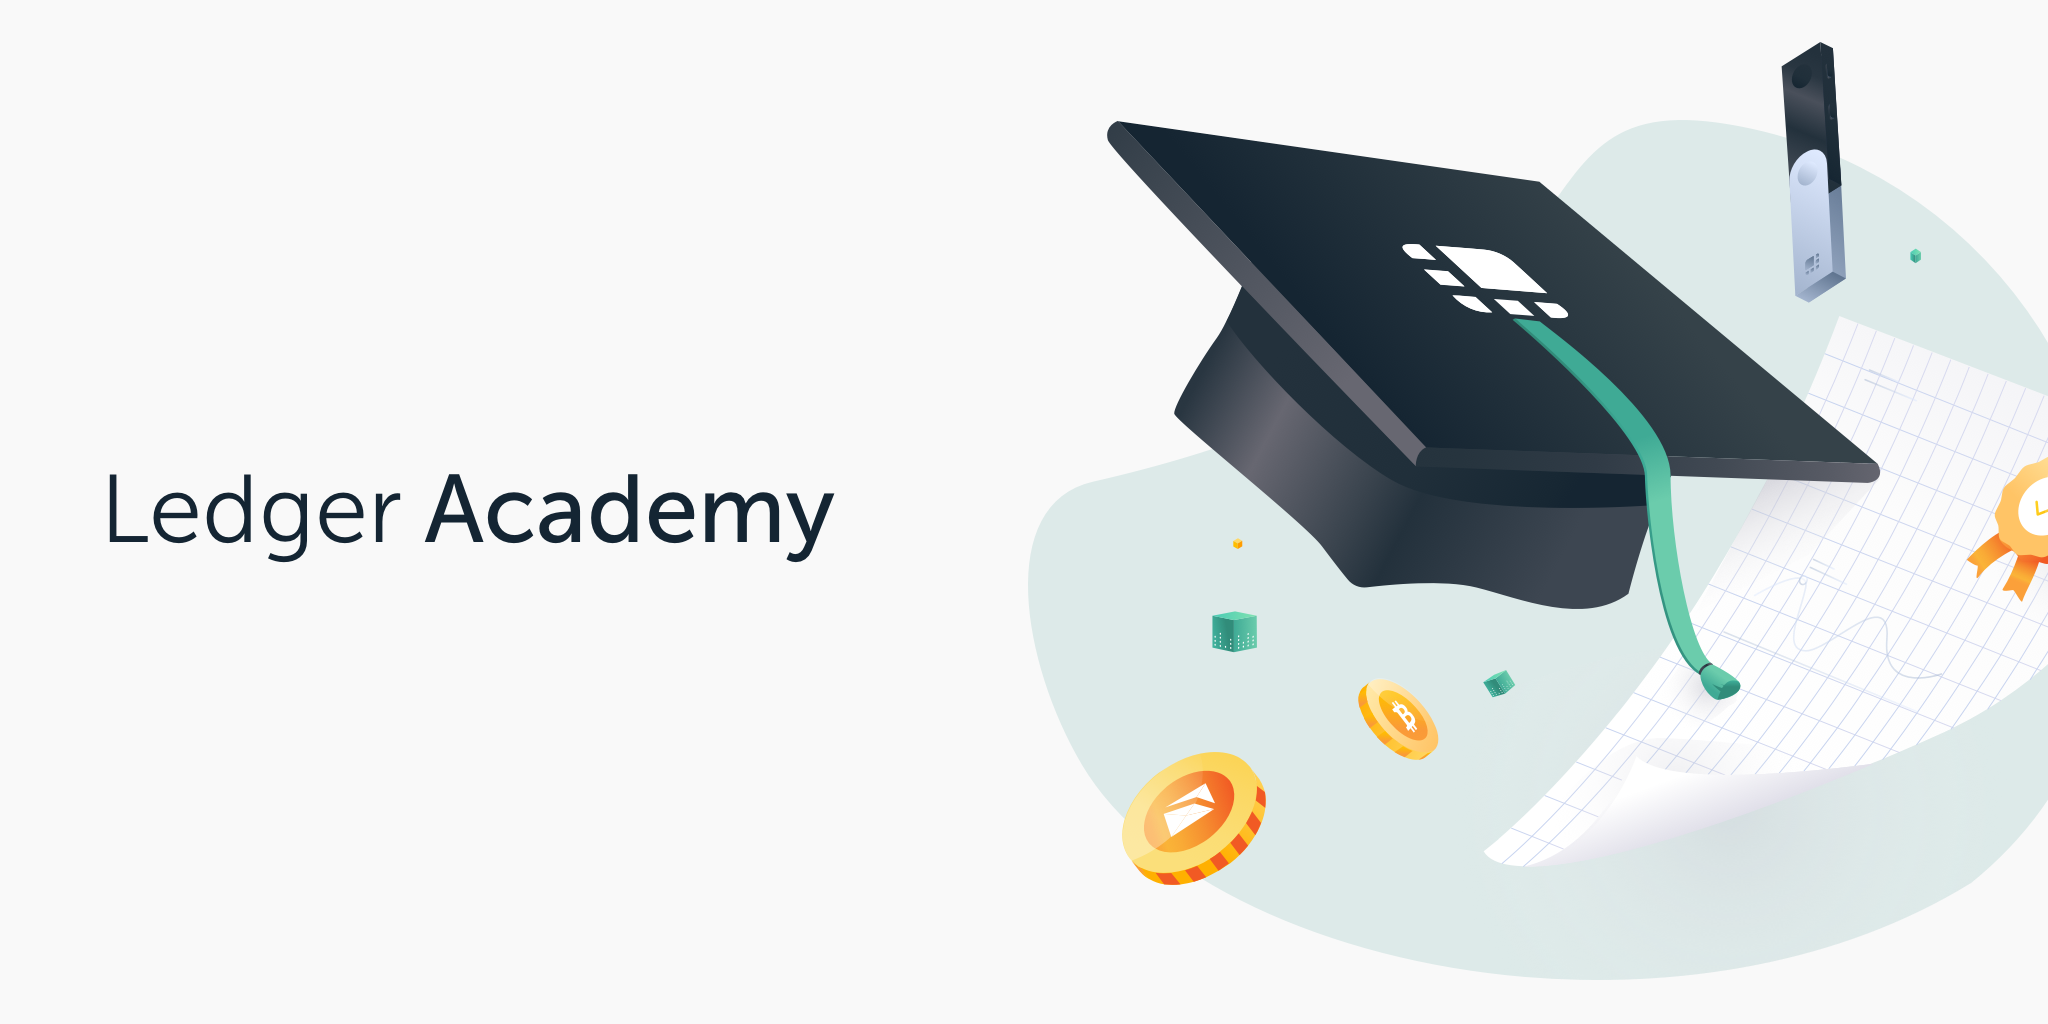 Ledger Academy